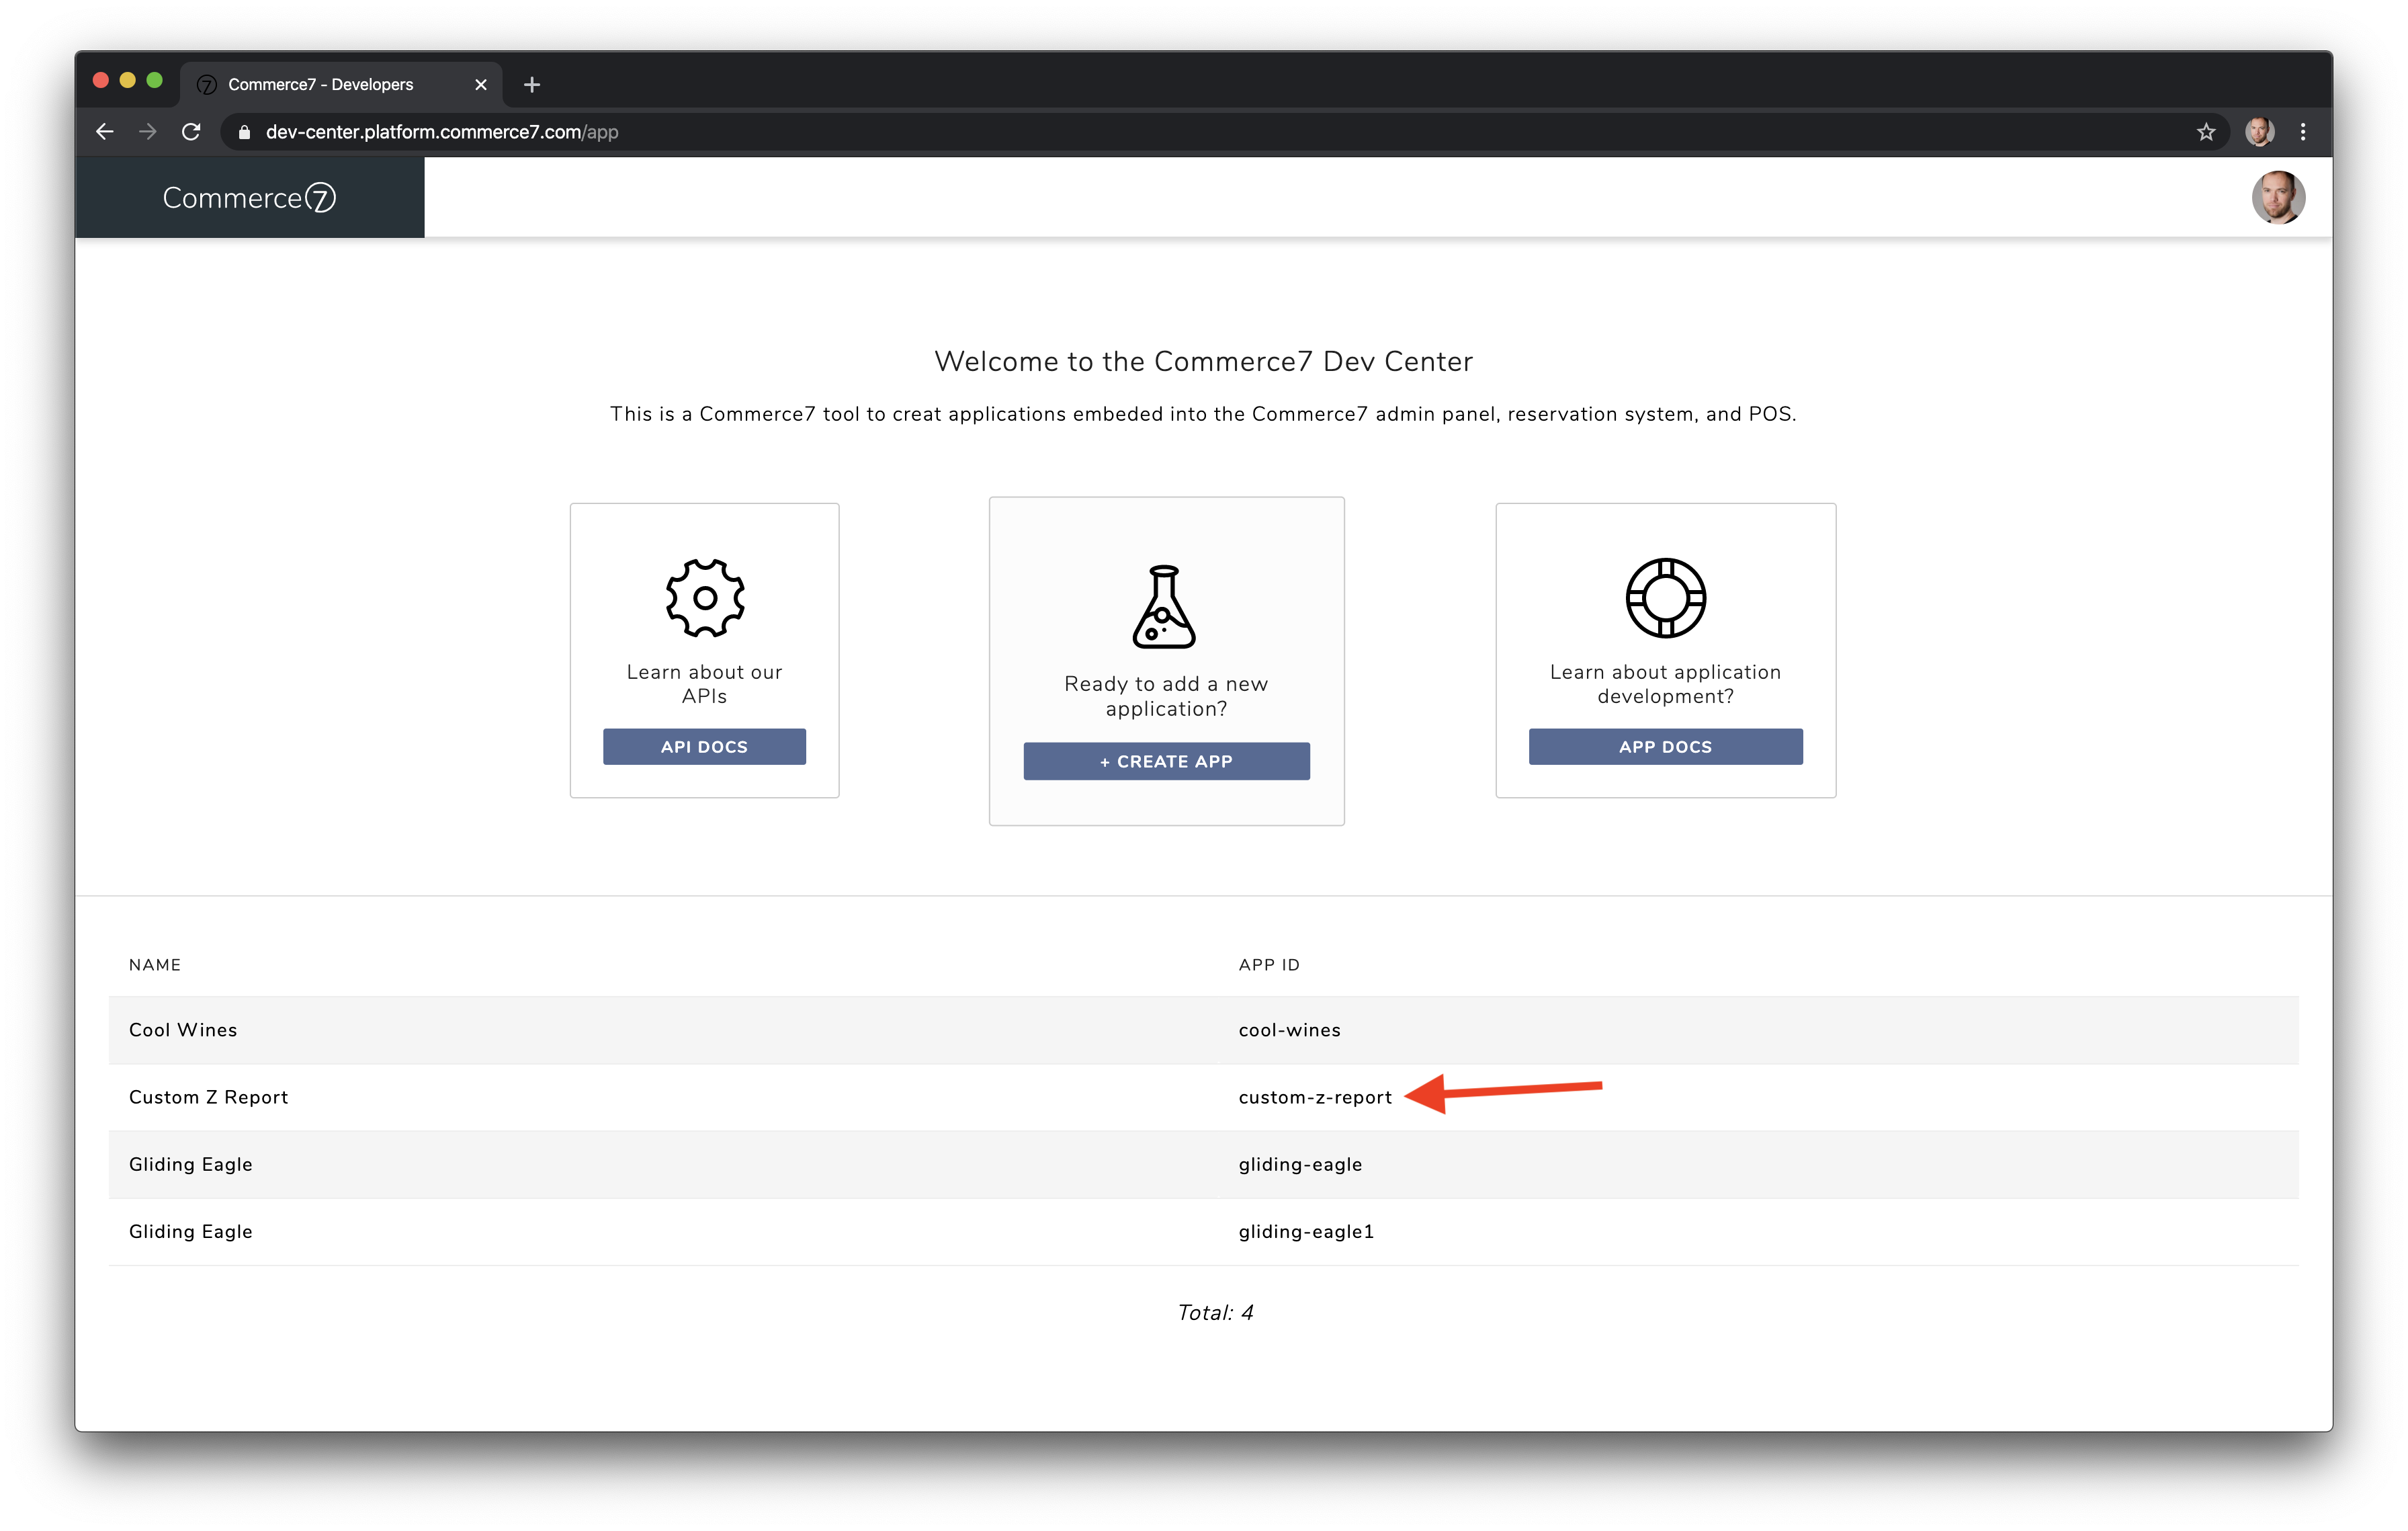 View your APP IDs in the dashboard view.